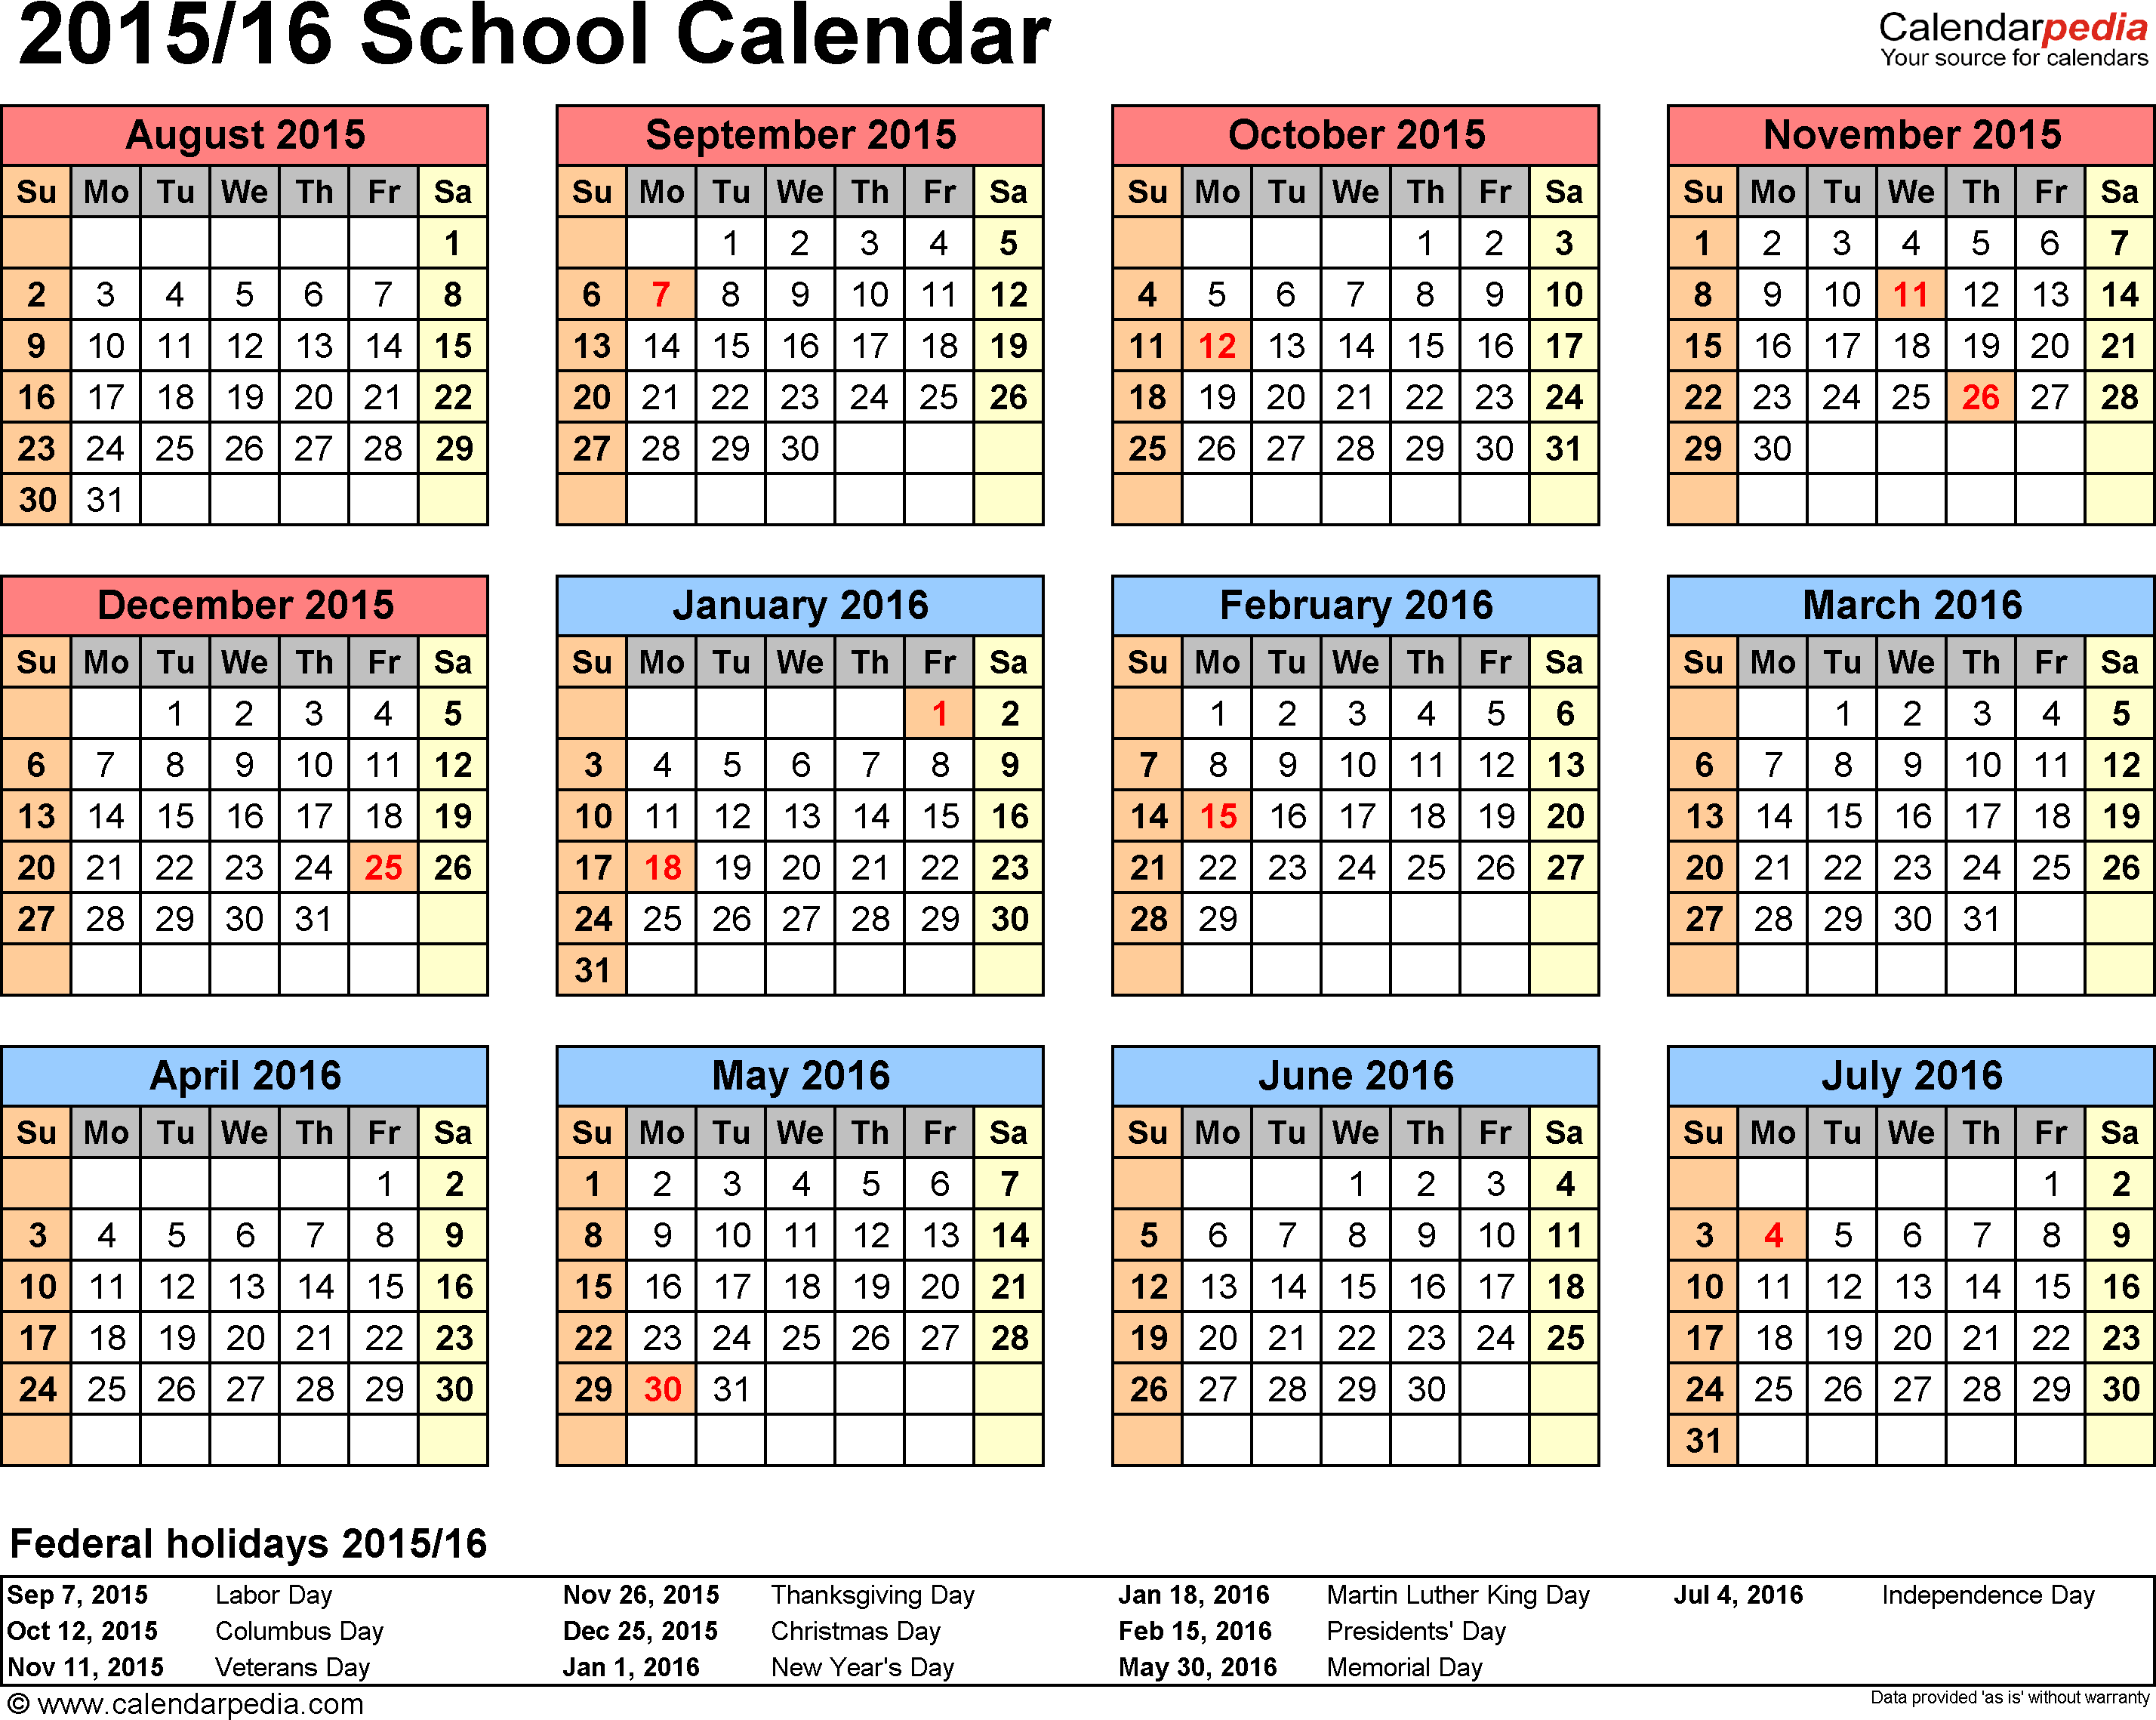 Template 4: School calendar 2015/16 for Word, landscape orientation, year at a glance, 1 page